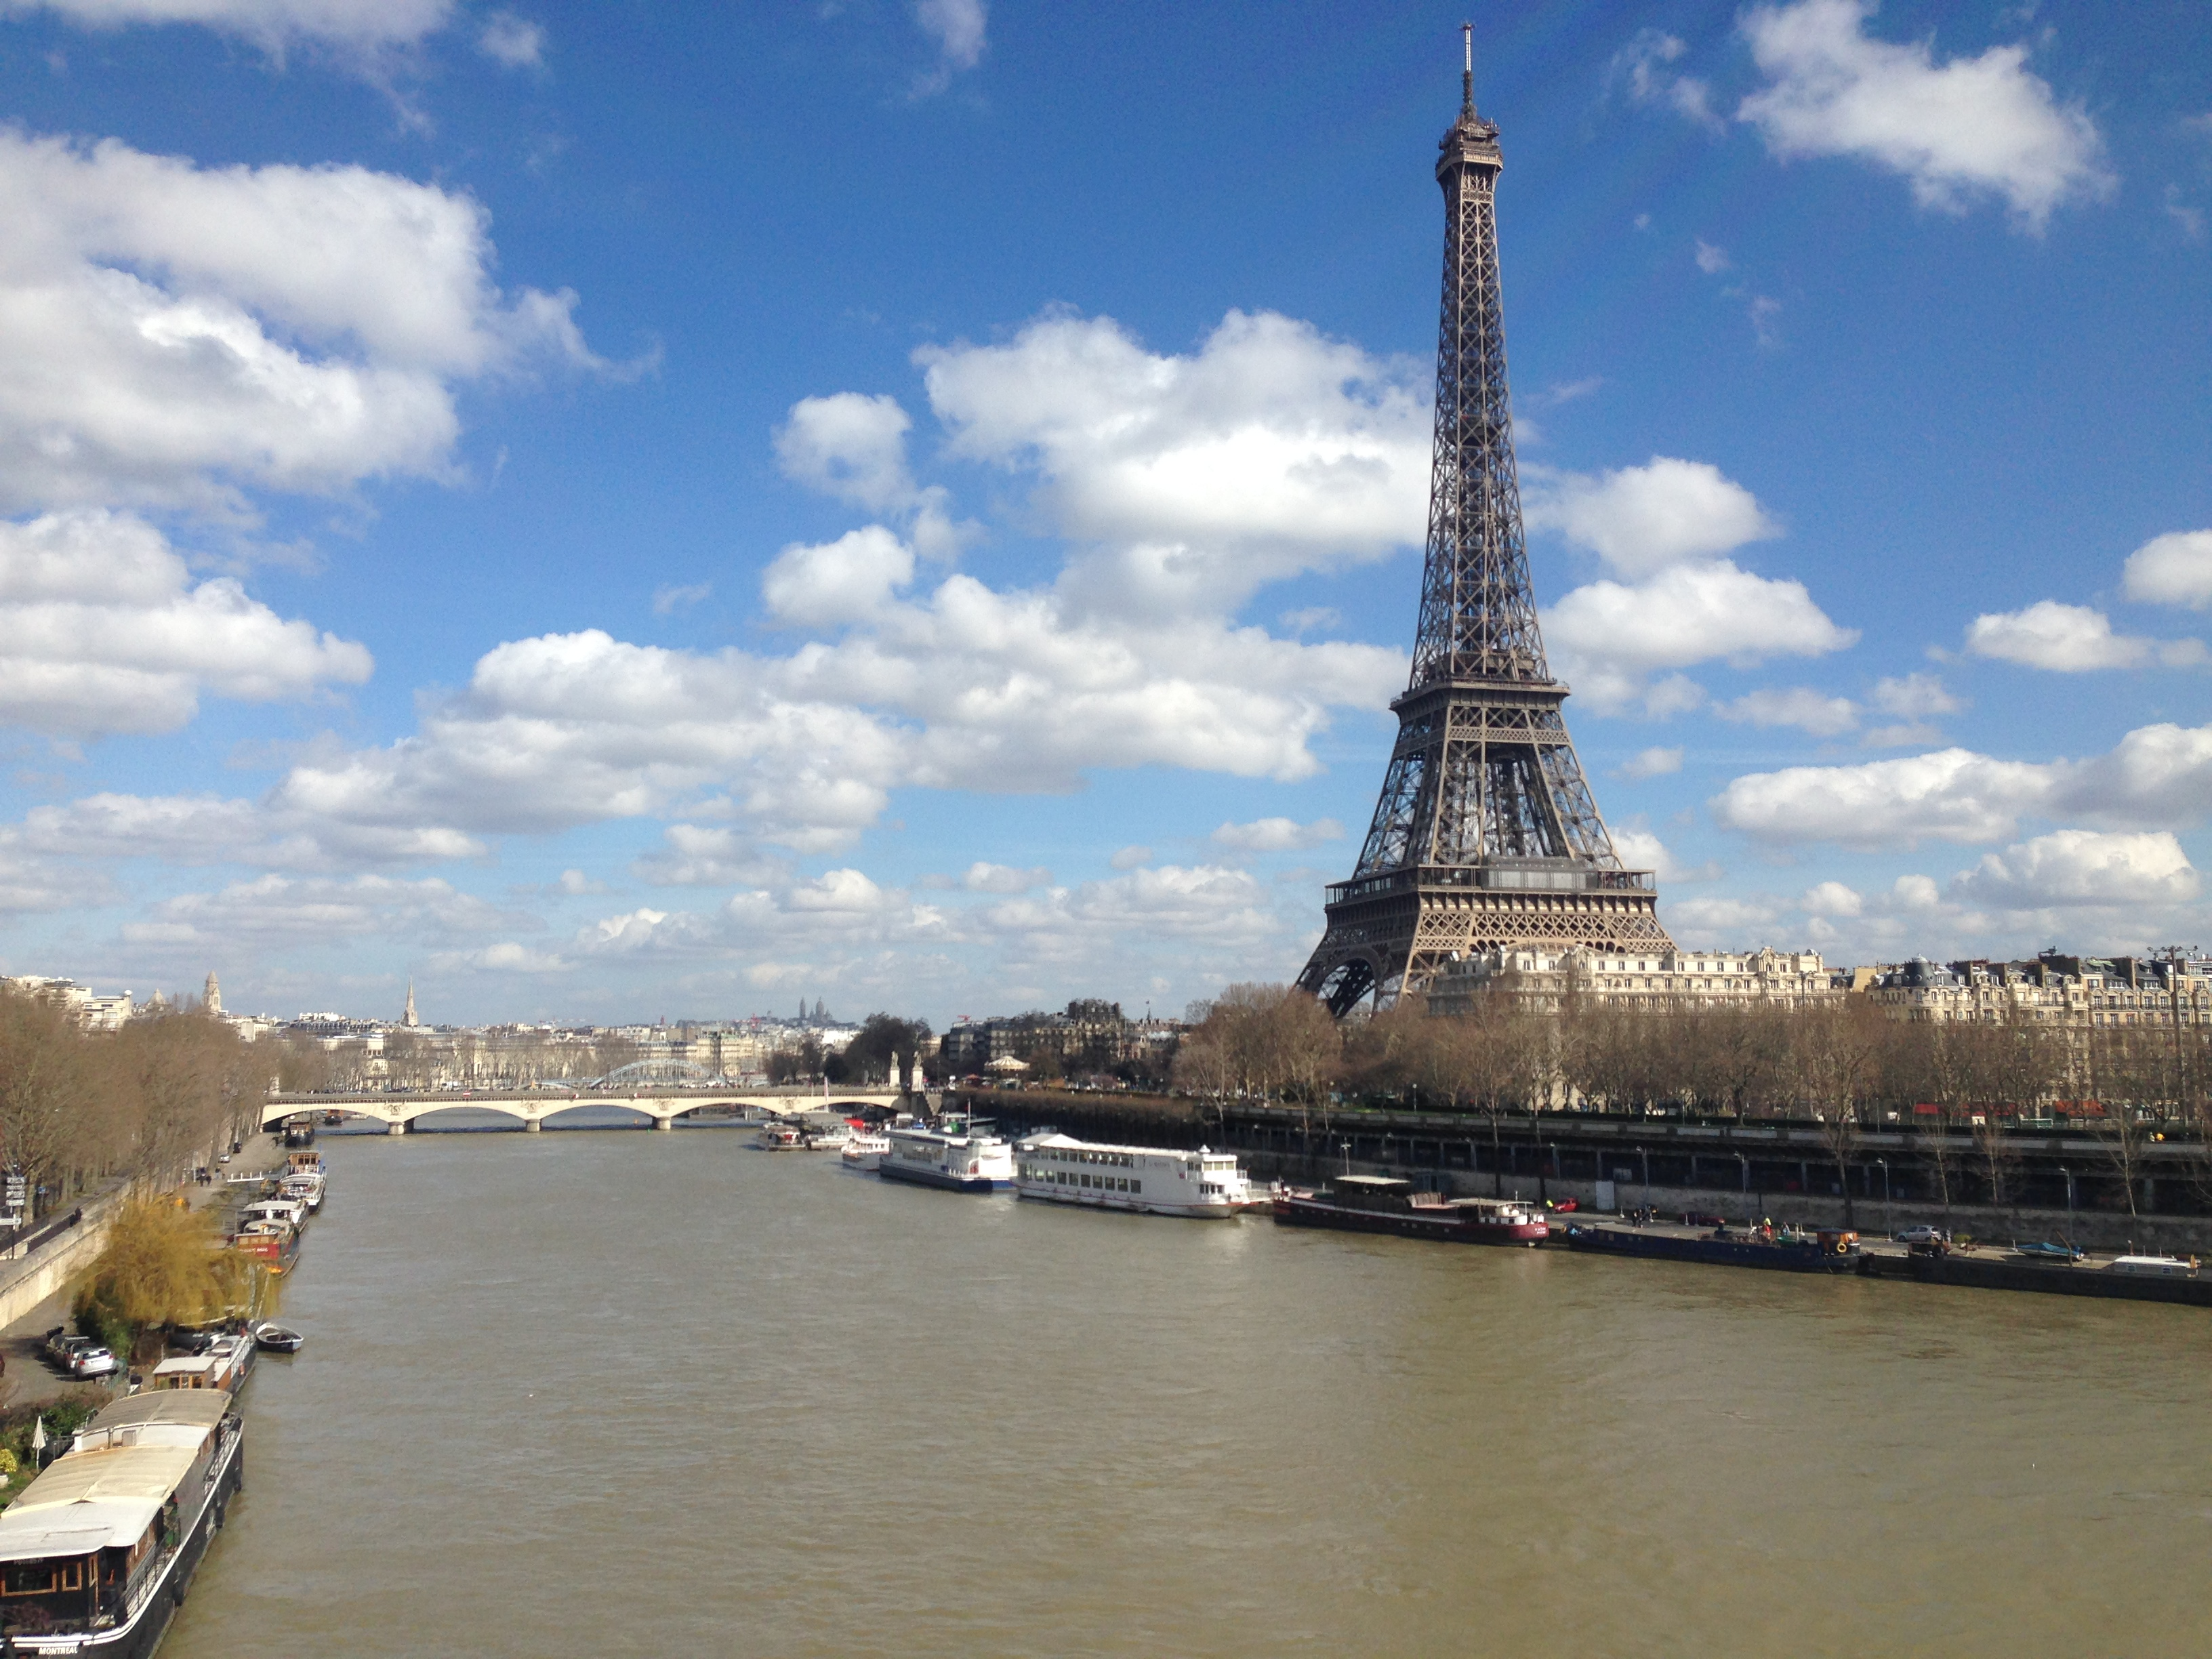 Eiffel_Tower_by_the_Seine_river,_Paris,_2_March_2014.jpg